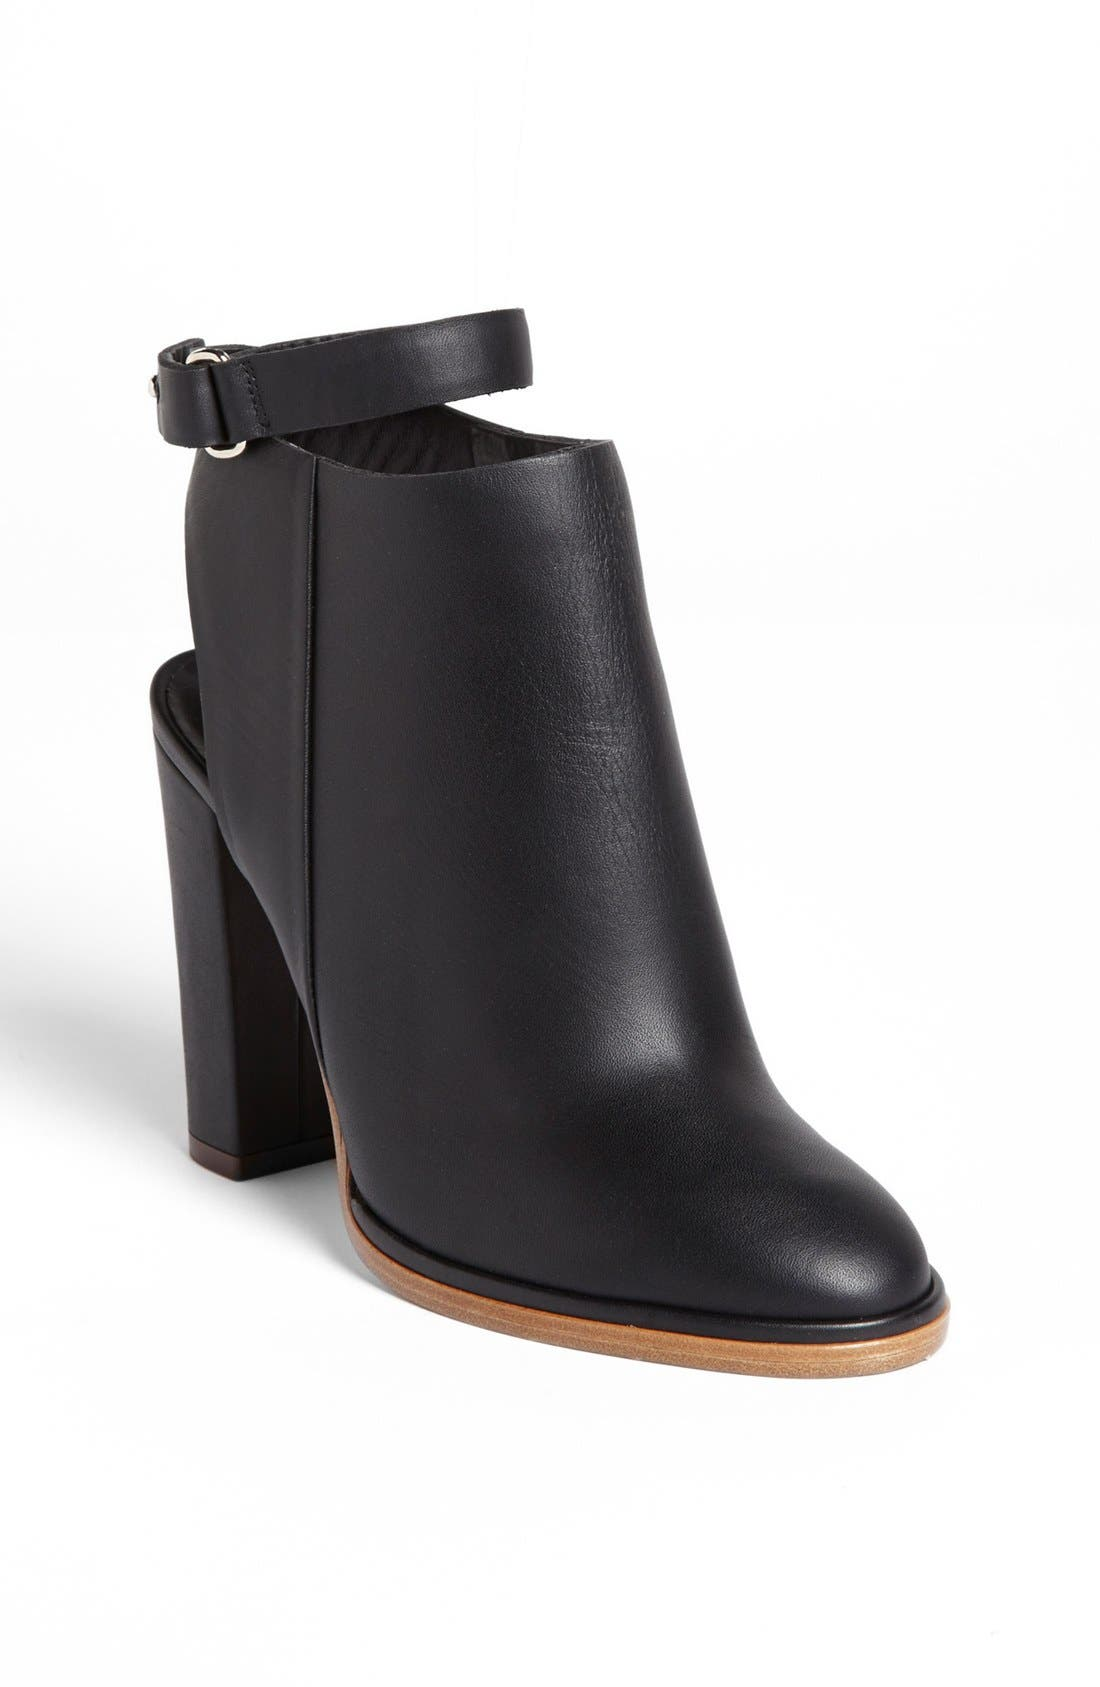 Main Image - Vince 'Joanna' Ankle Strap Bootie